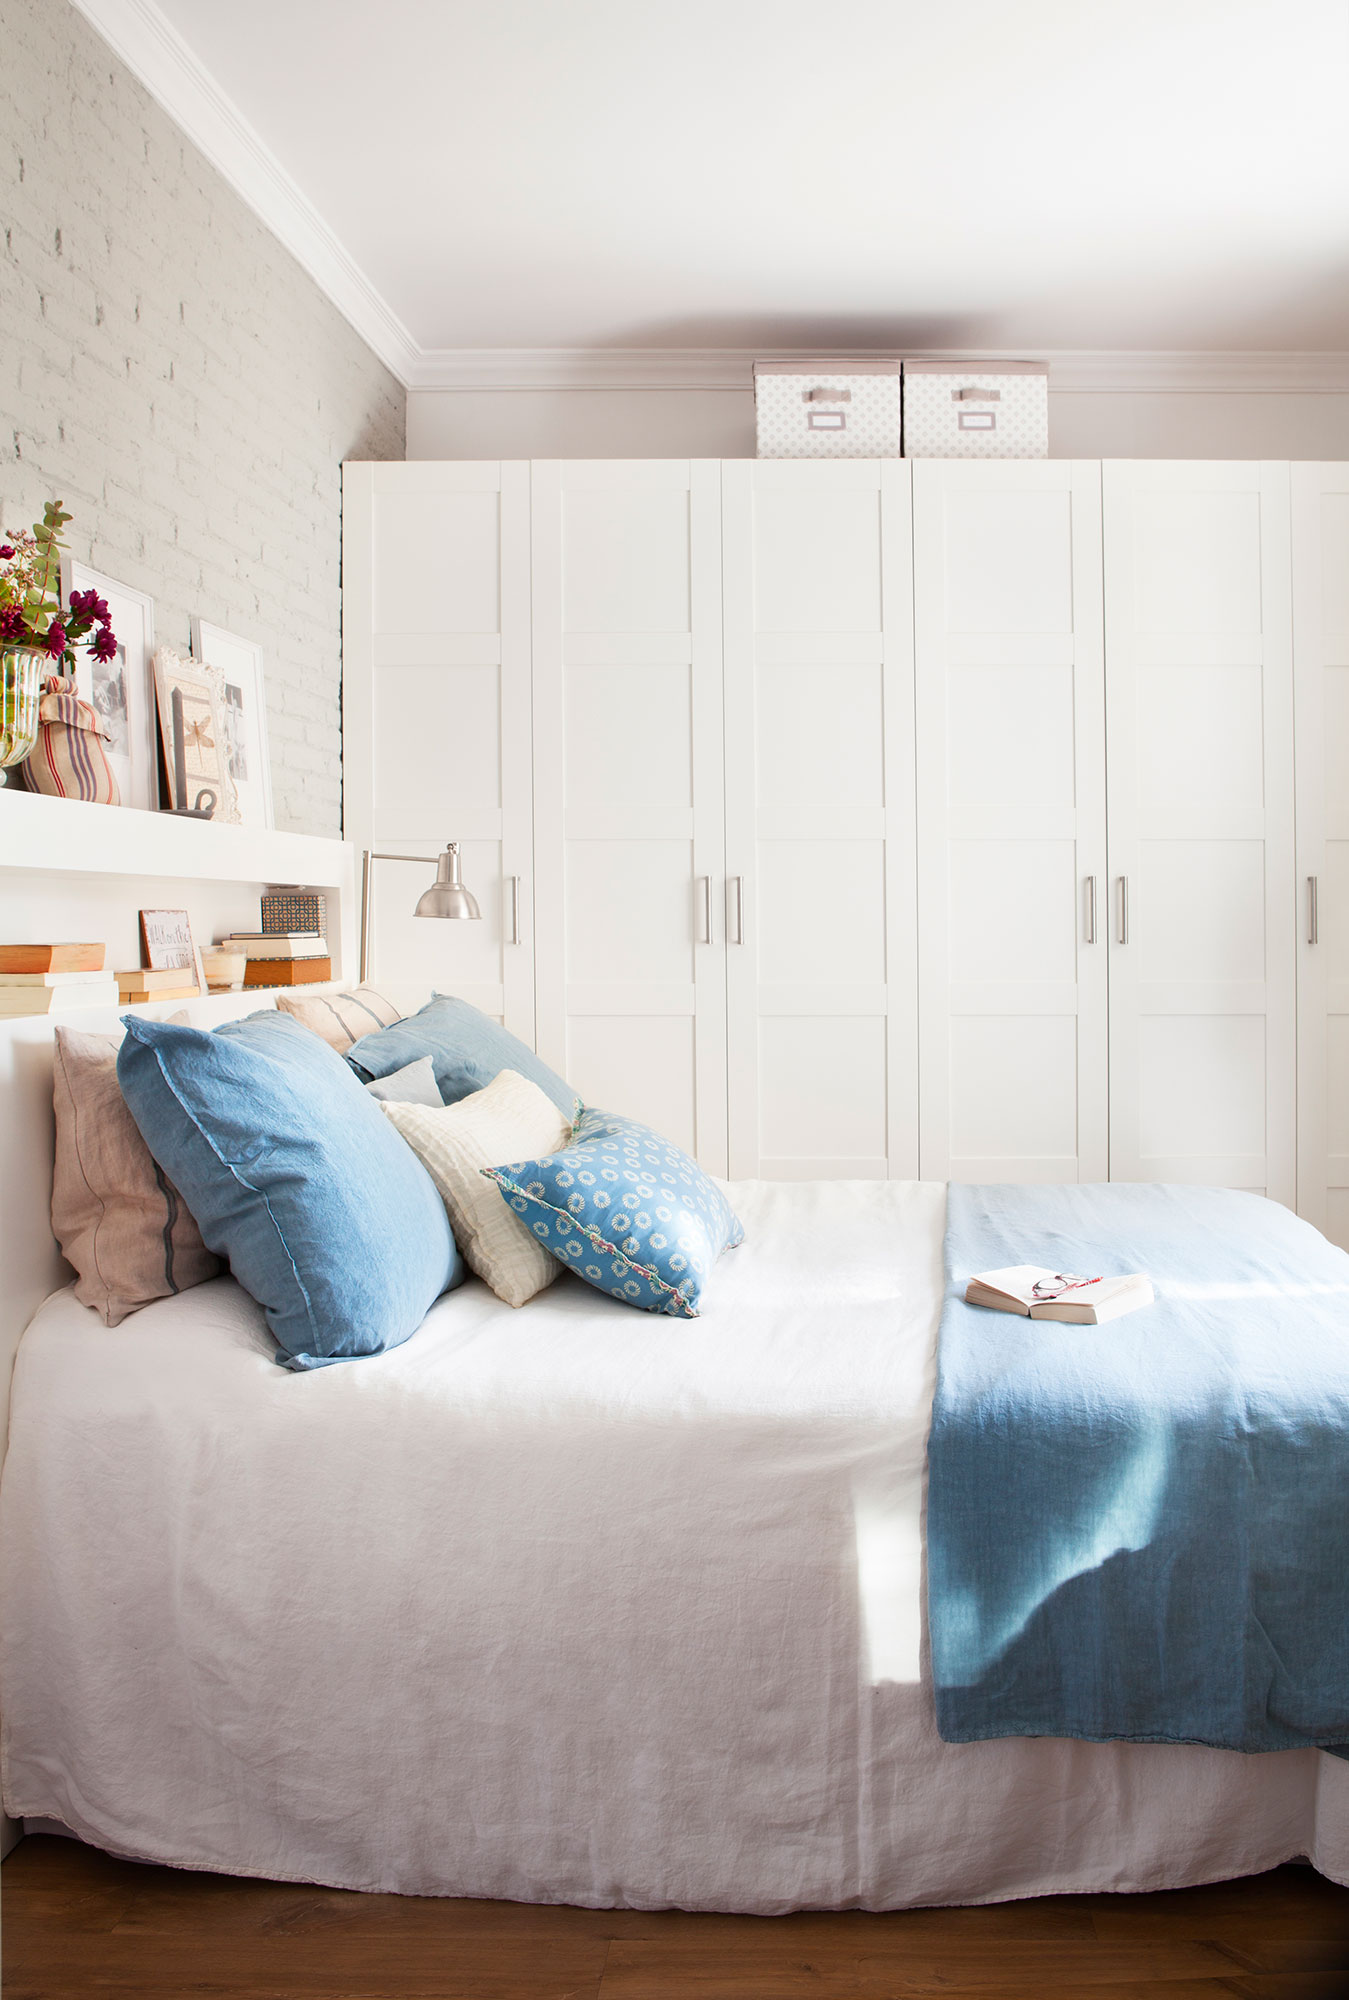 Compartir piso 10 ideas low cost para decorar tu dormitorio for Decoracion pared dormitorio